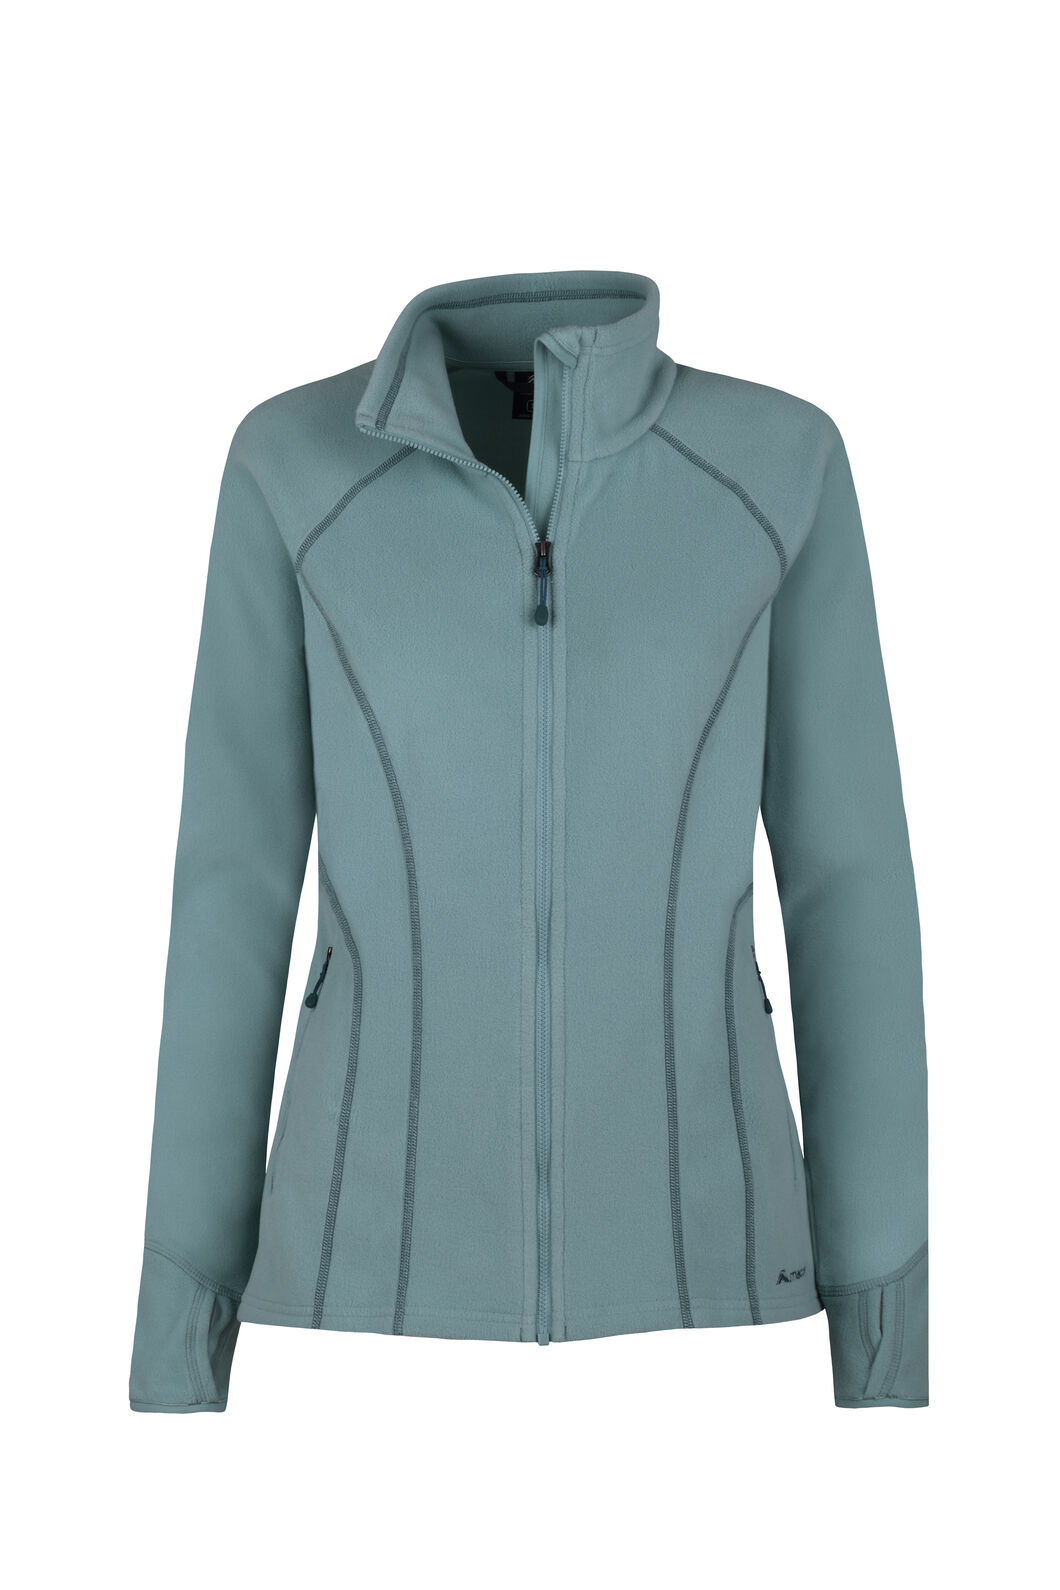 Macpac Kea Polartec® Micro Fleece® Jacket — Women's, Canton, hi-res